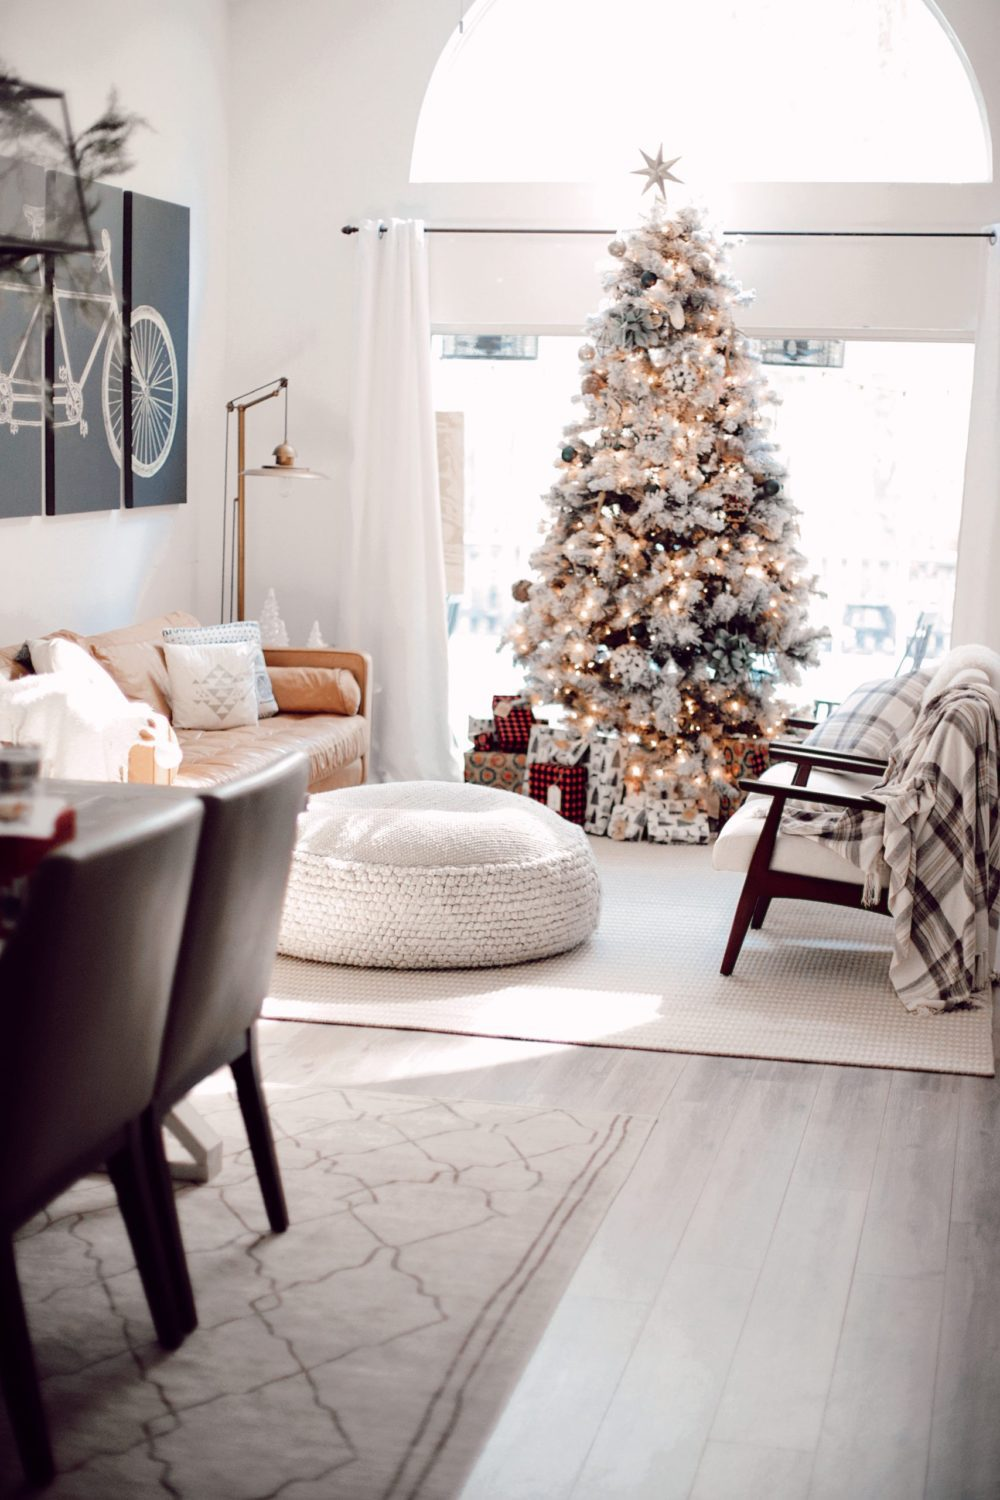 7 Geniously Efficient Mom Hacks for Home Design | 7 Genius Efficient Home Design Hacks for Moms by popular Florida life and style blog, Fresh Mommy Blog: image of a living room decorated with rugs and furniture from CORT Furniture Outlet.